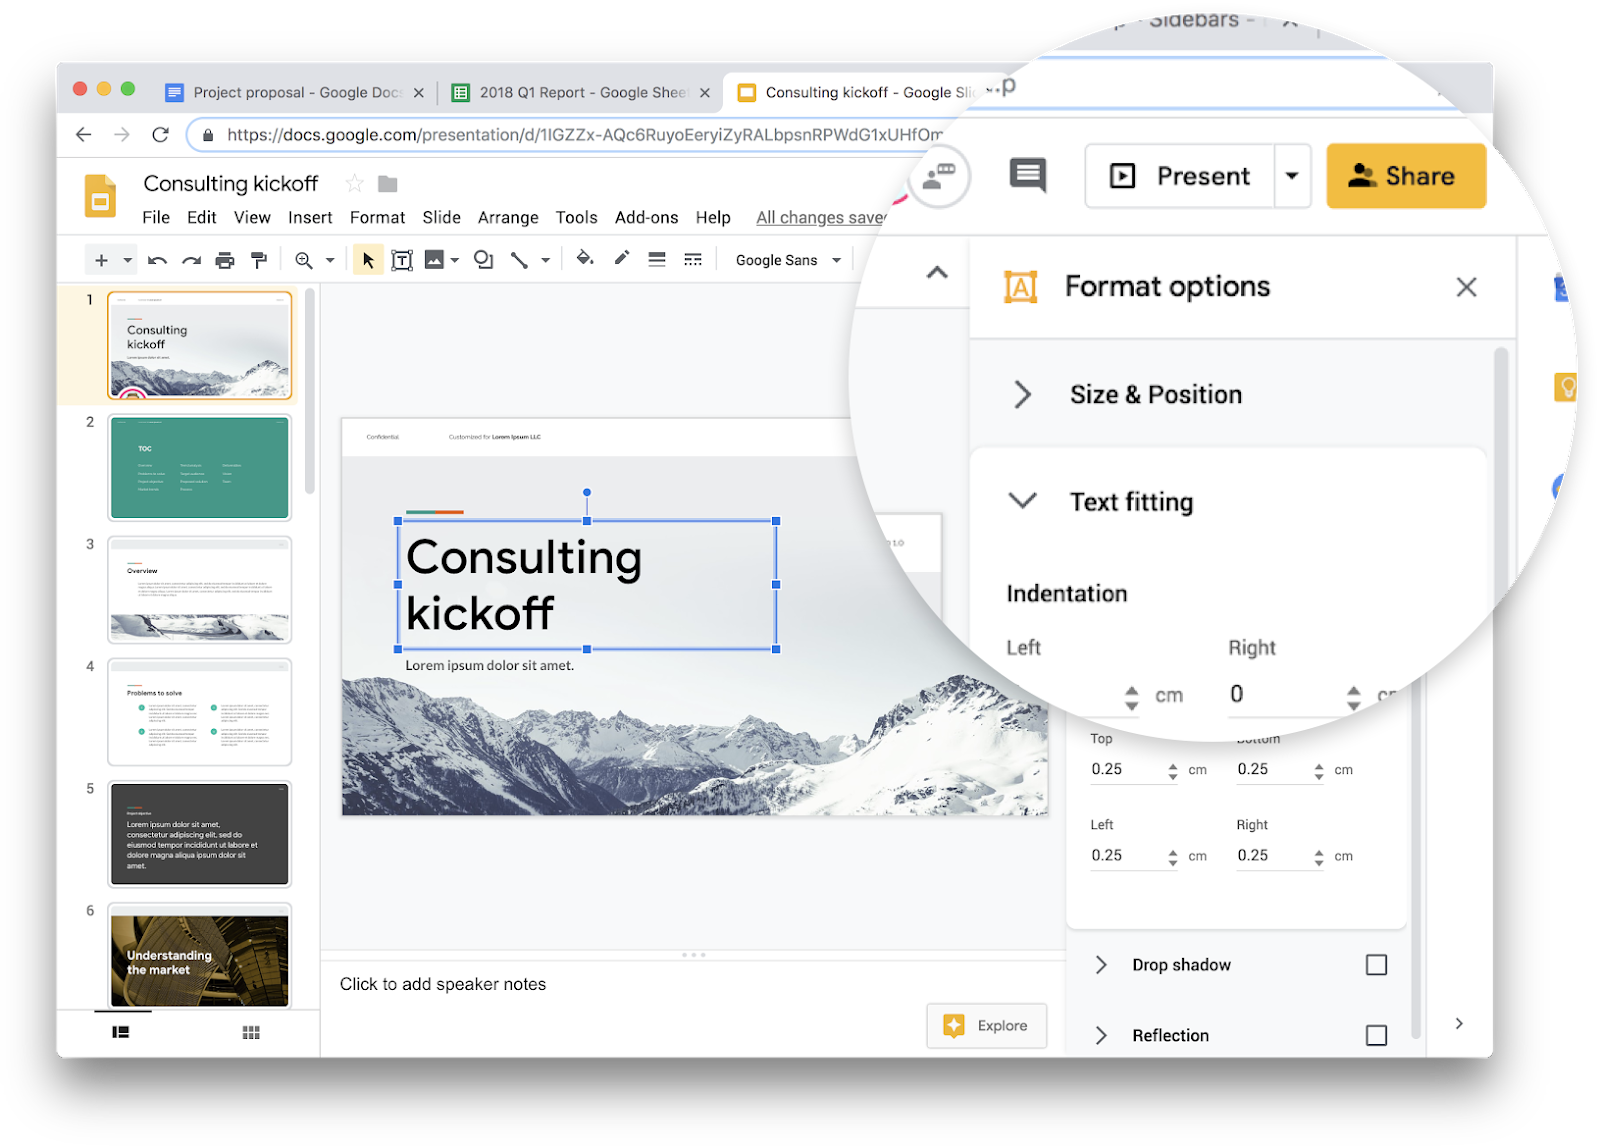 Google Docs, Sheets, Slides and Sites on the web are going Material Design